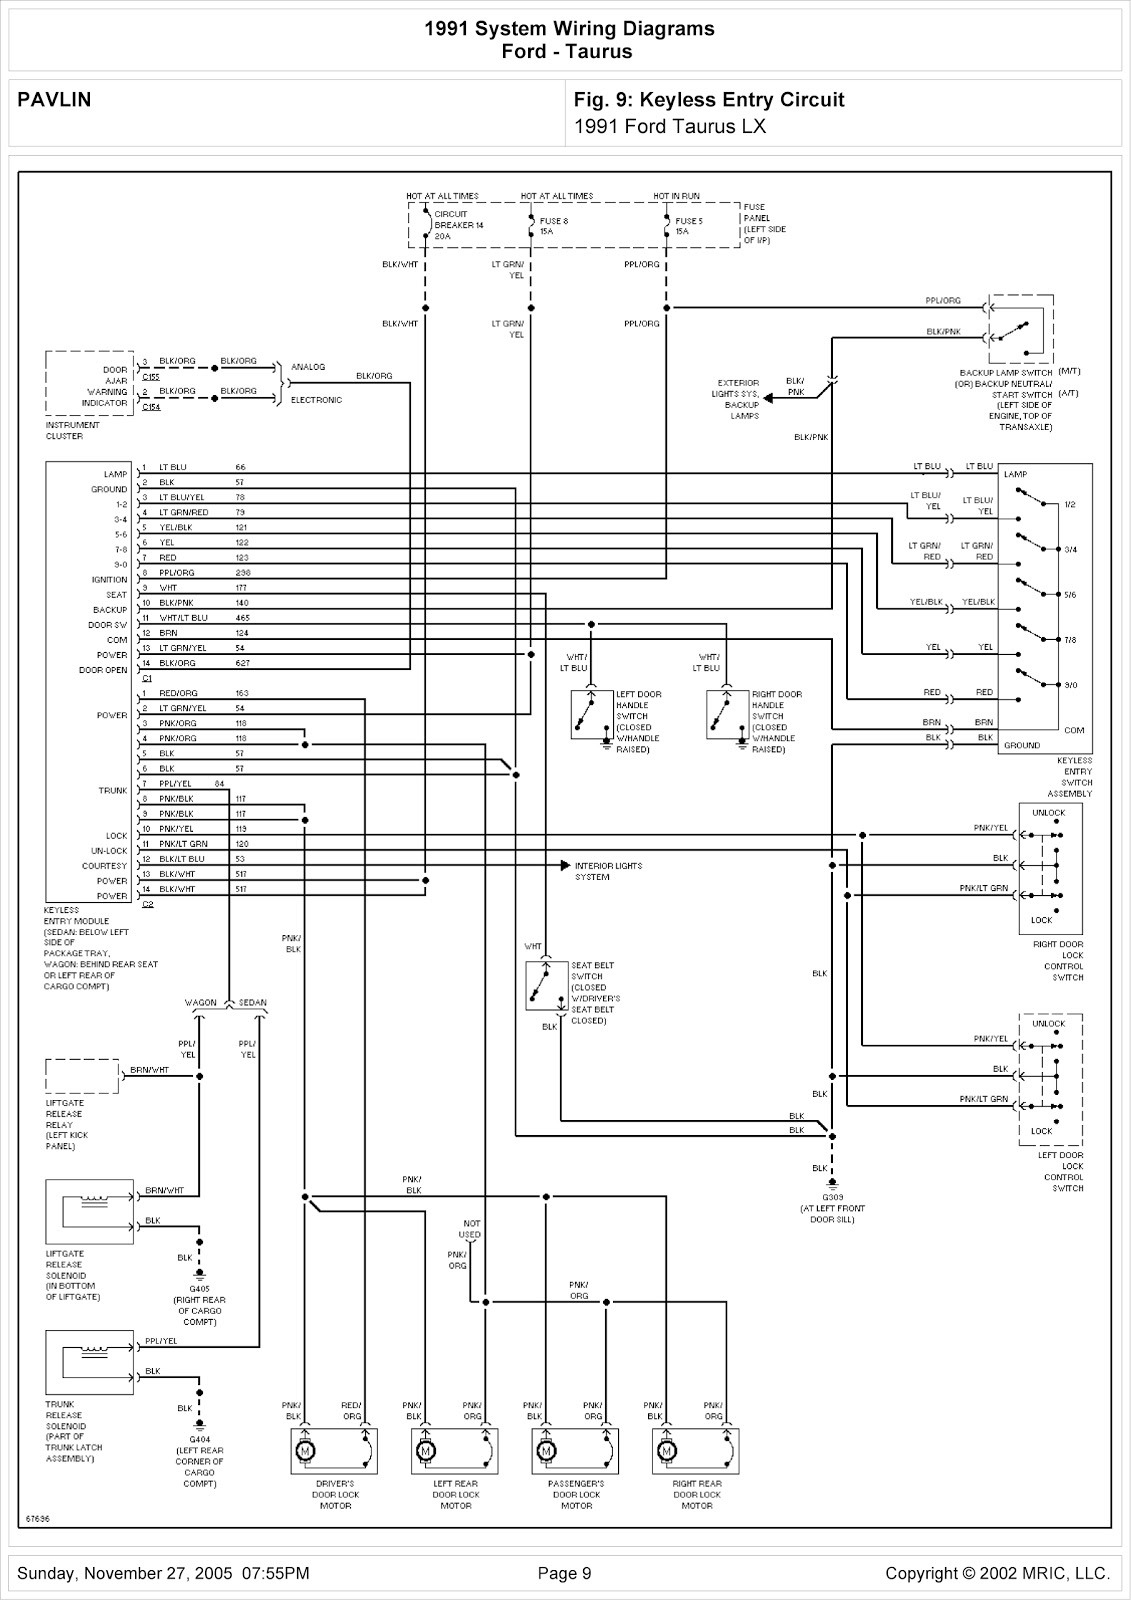 1991 ford taurus lx system wiring diagram for keyless entry circuit